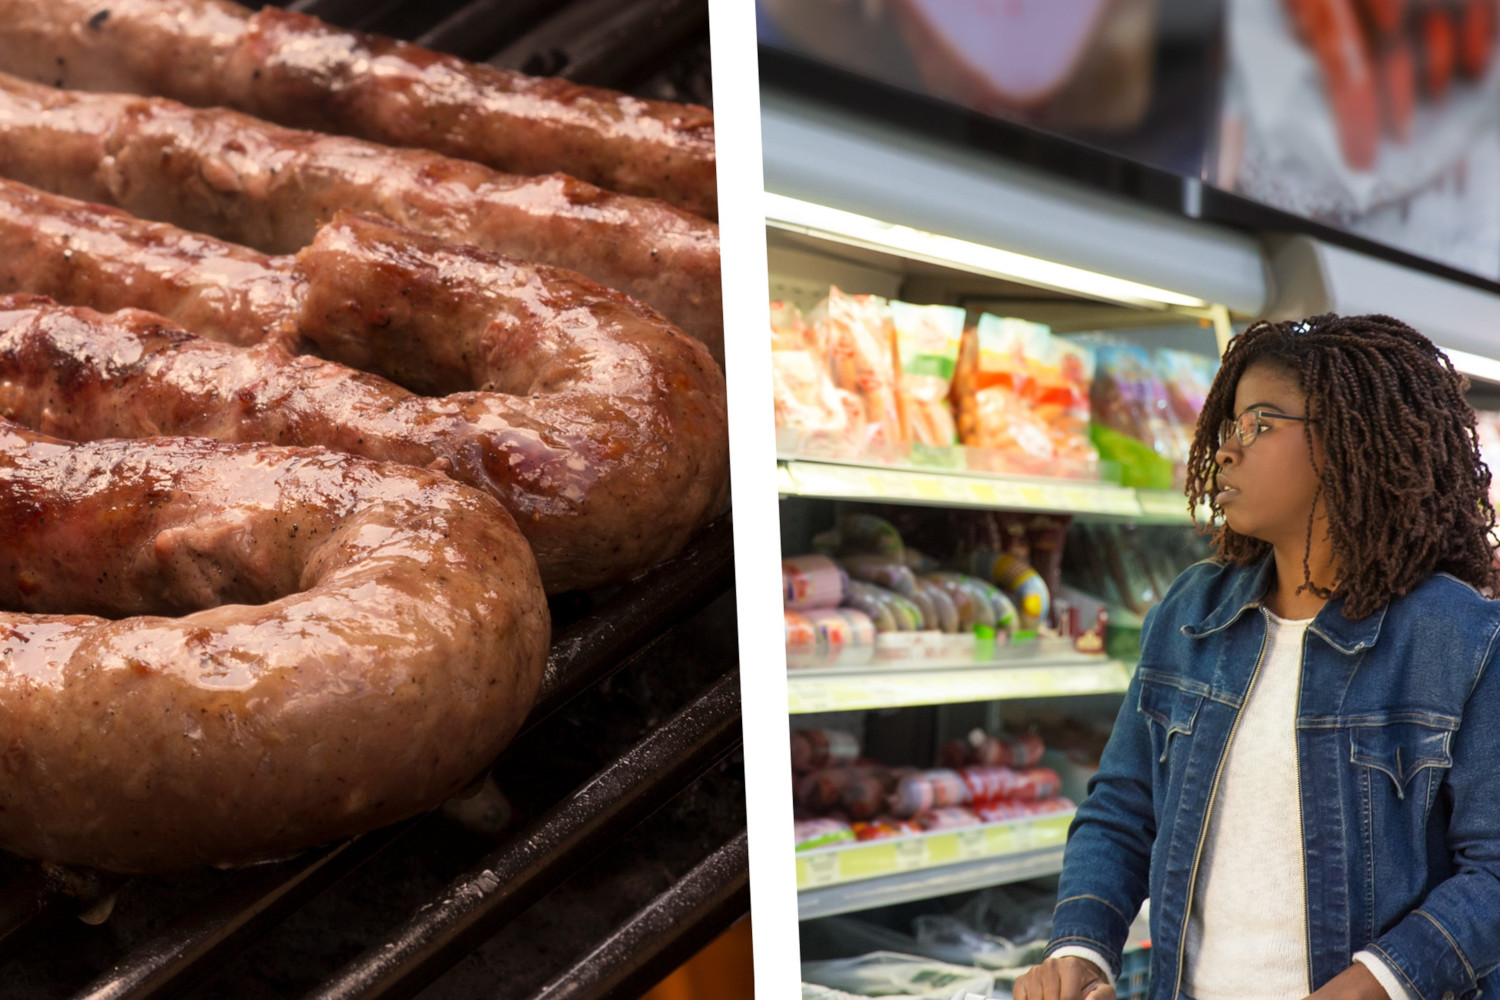 Boerewors vs. sausage: A meat specialist's top tip for consumers is to avoid buying meat at the end of the month when demand and prices are higher. Photo: Supplied/Food For Mzansi